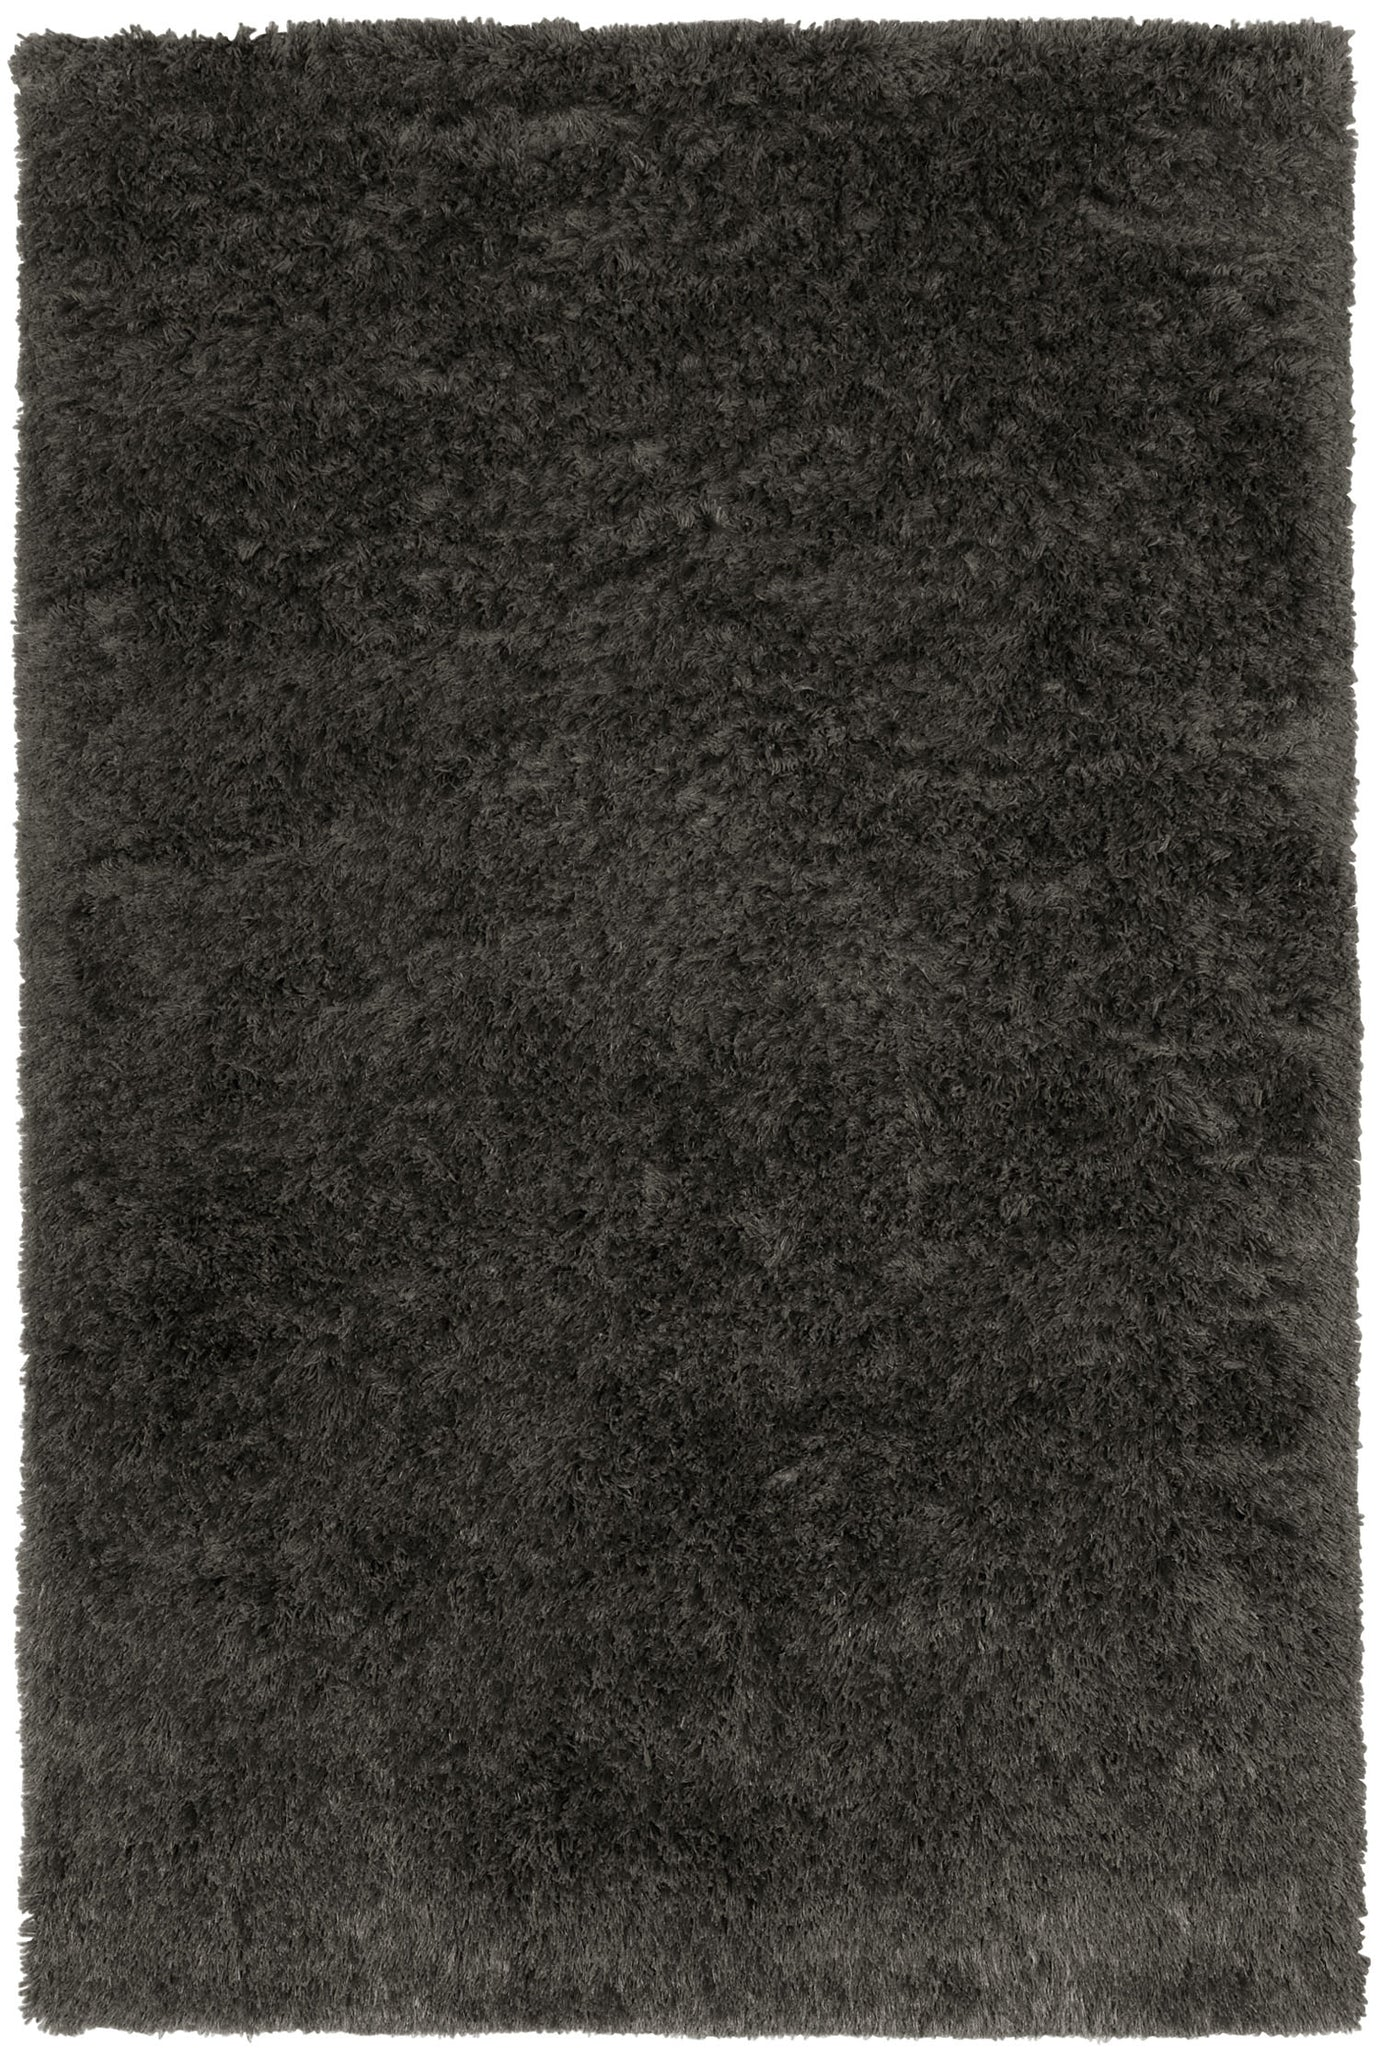 Capel Trolley Line 3250 Dark Grey 325 Area Rug main image